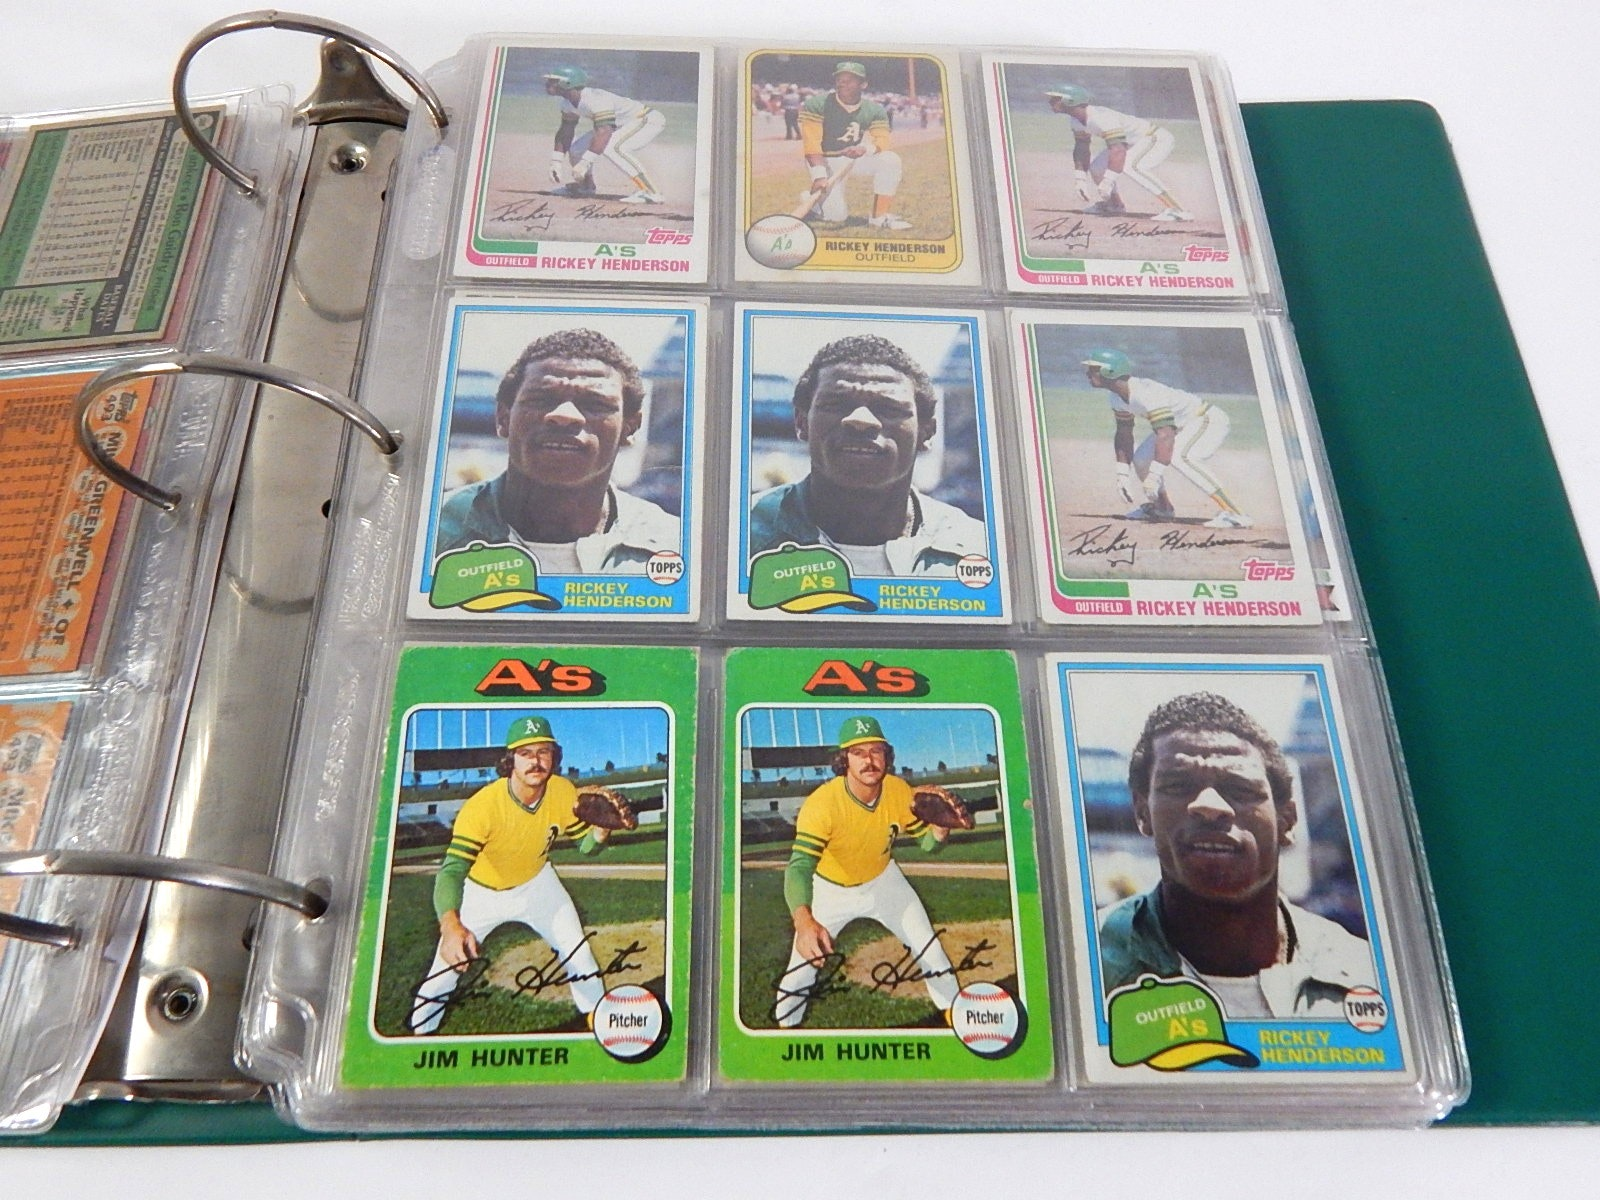 Baseball Star Card Album from 1970s and 1980s